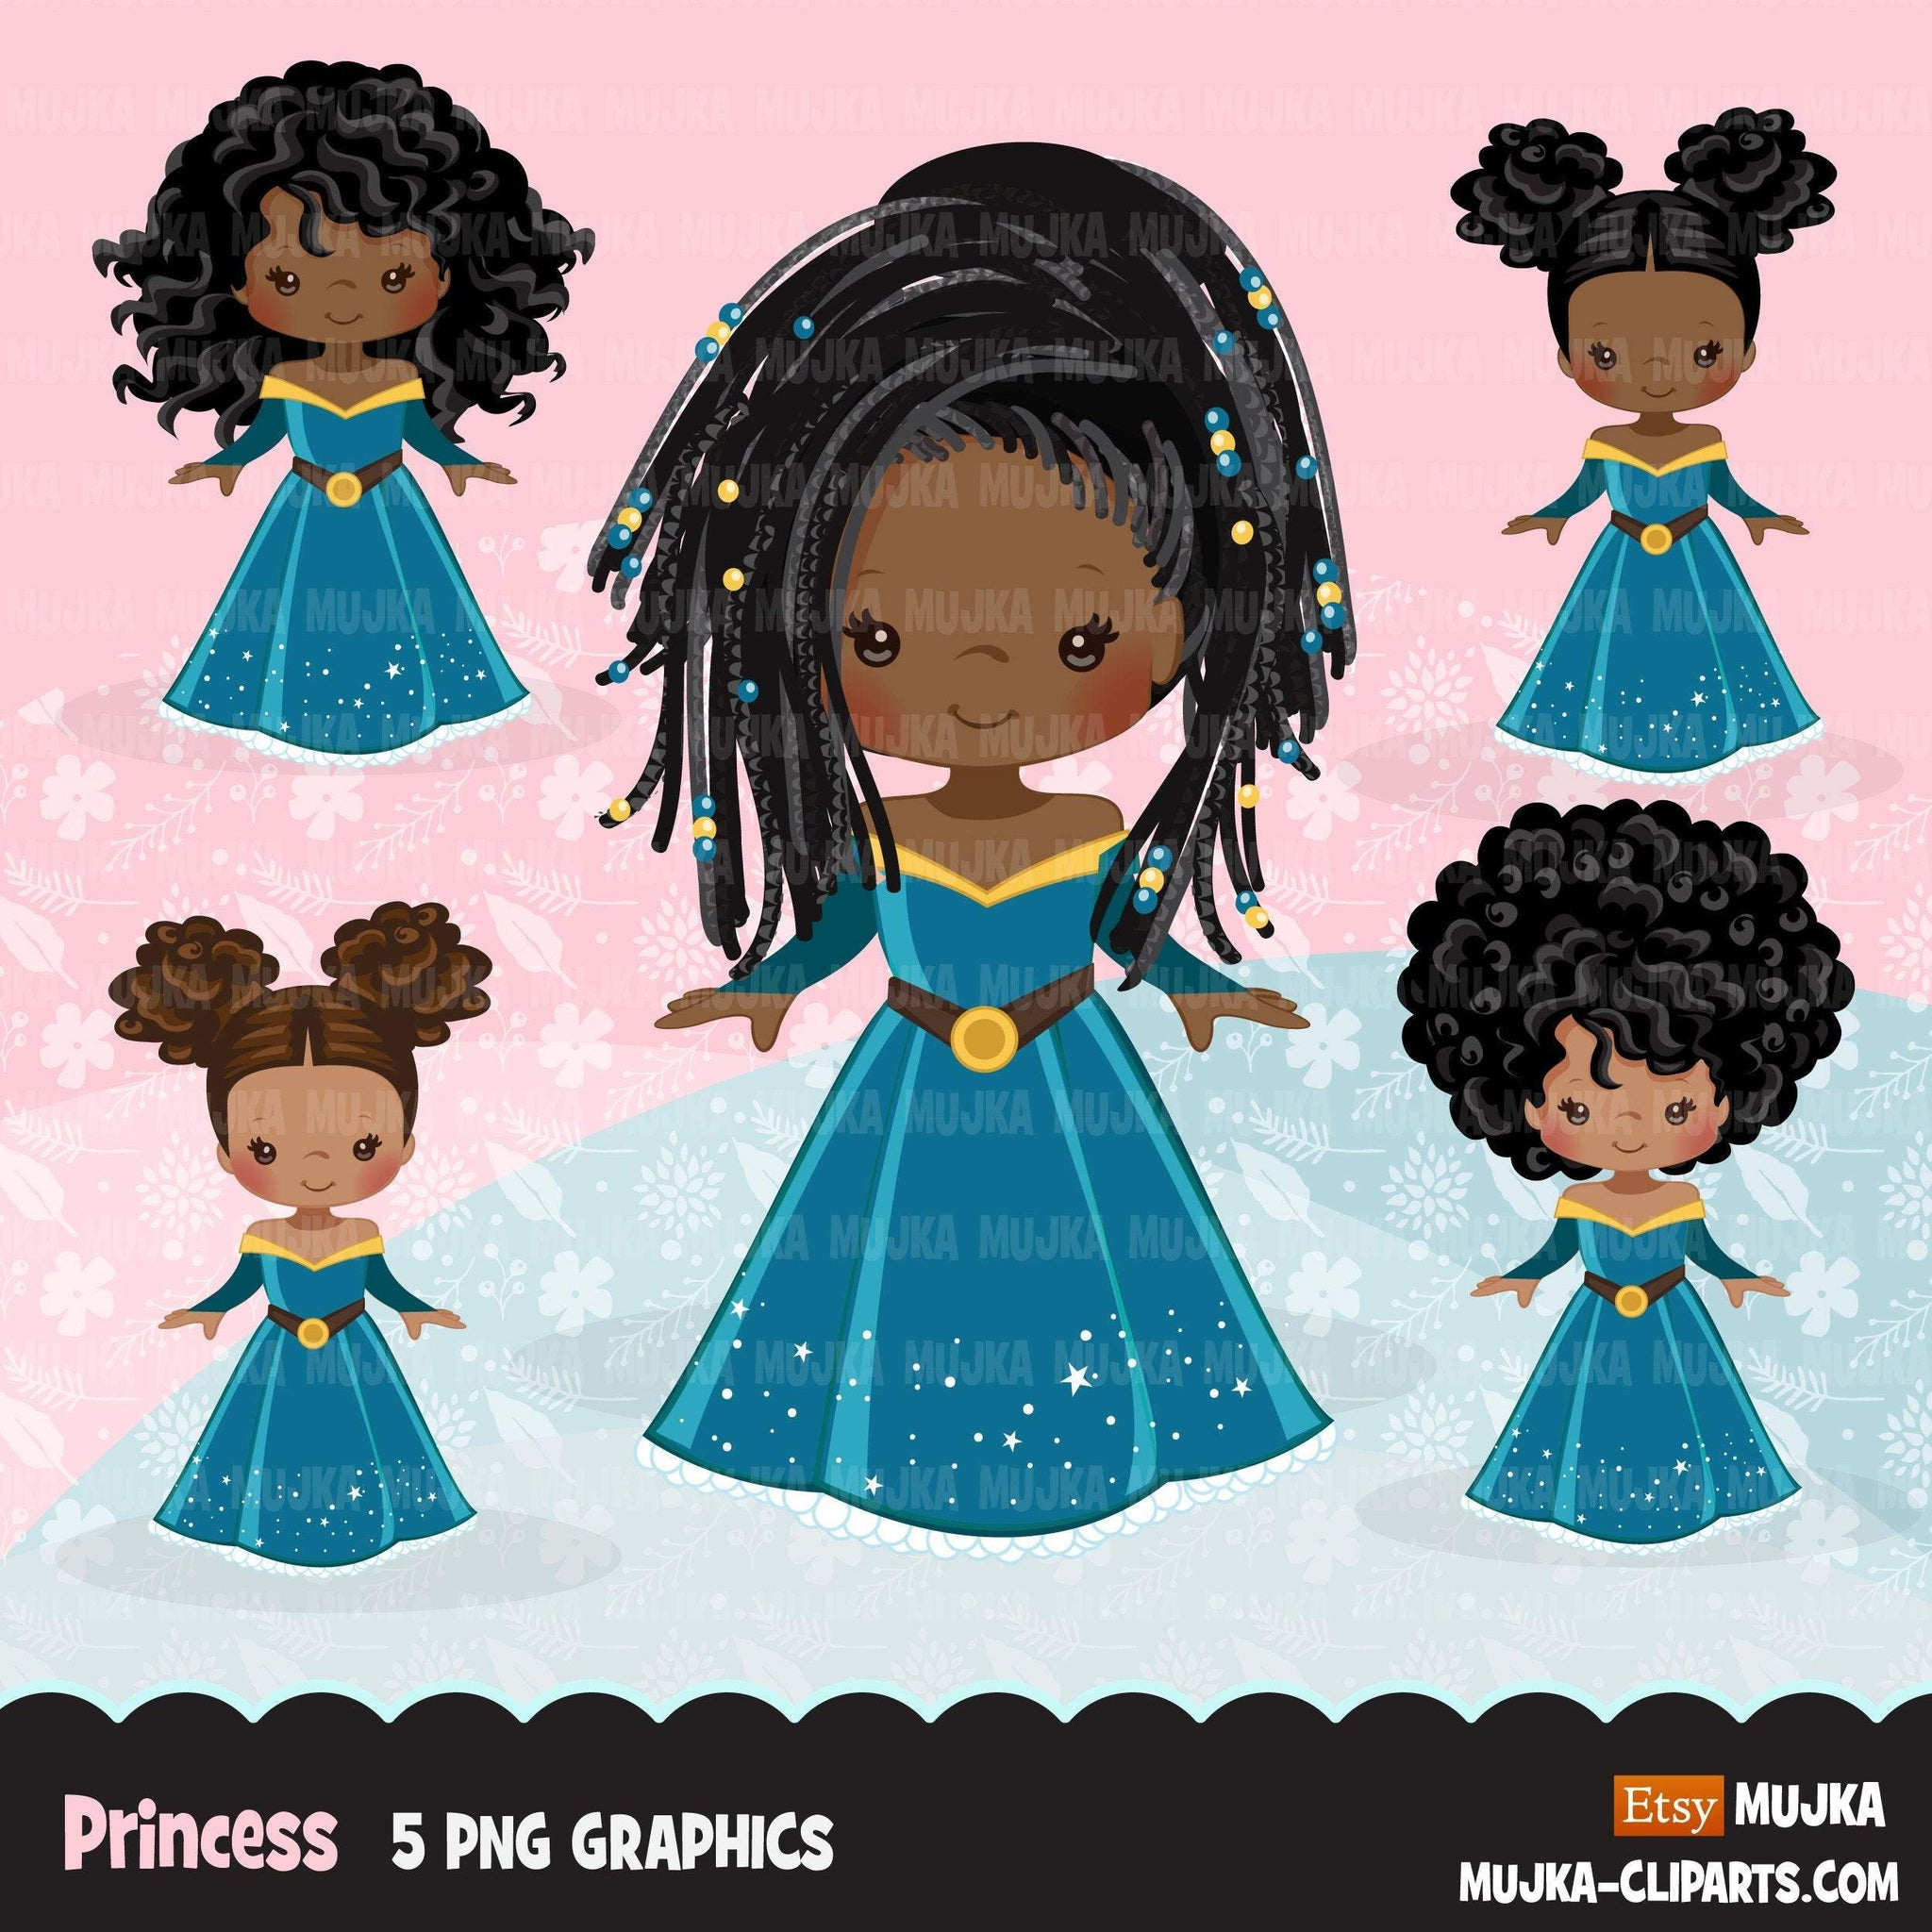 Black Princess clipart, fairy tale graphics, girls story book, dark blue princess dress, commercial use clip art